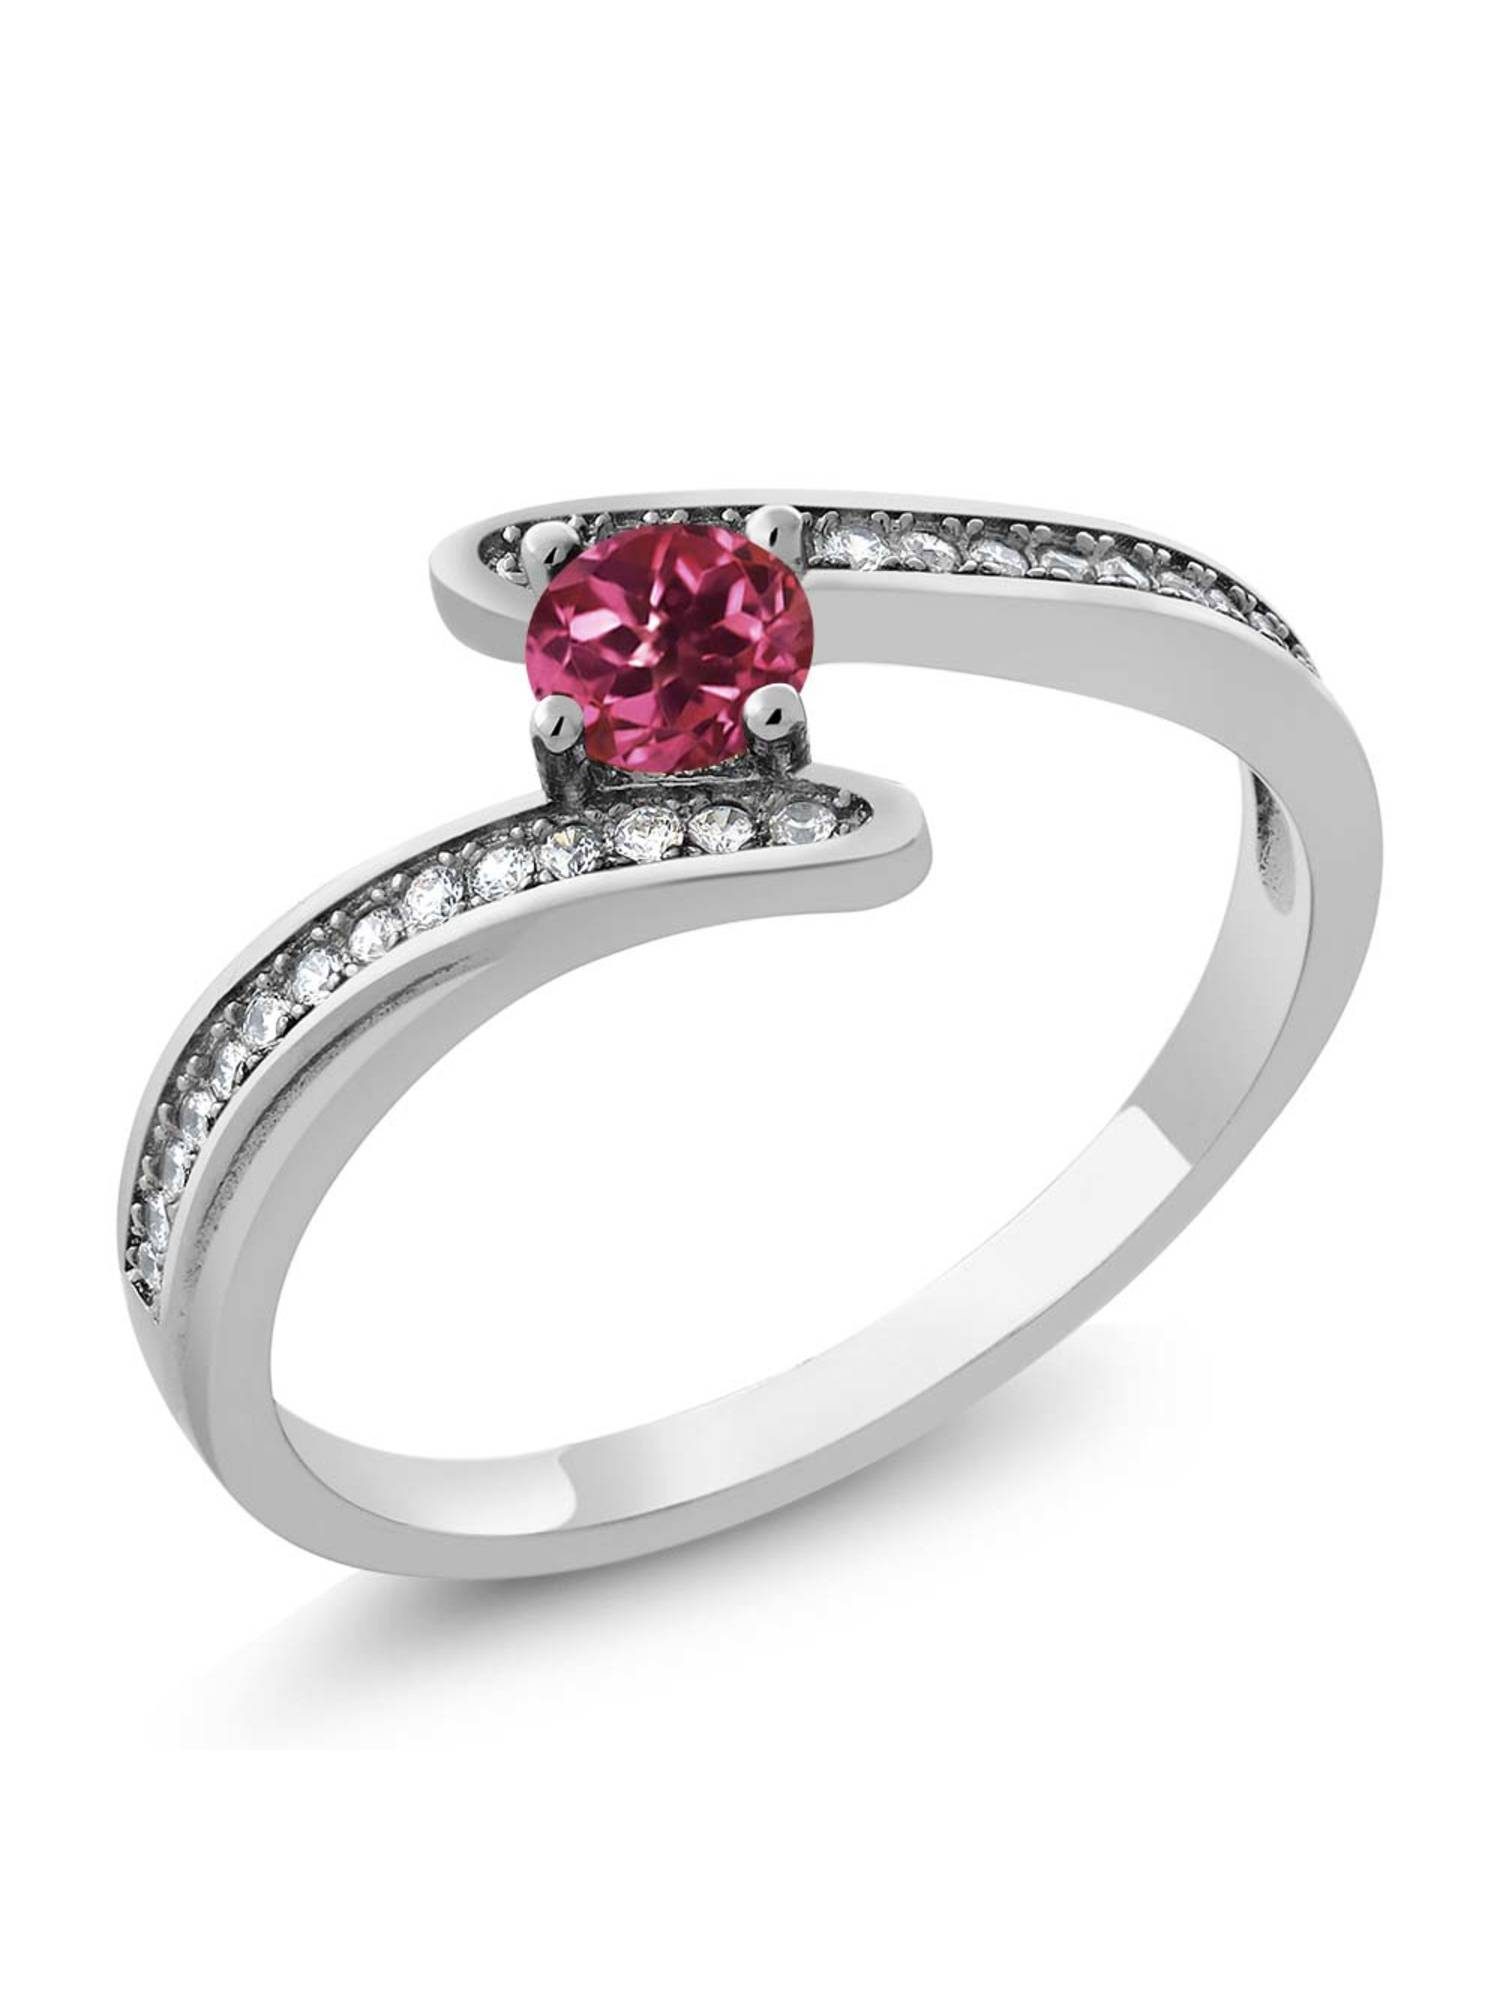 0.67 Ct Round Pink Tourmaline Platinum Plated Swirl 925 Sterling Silver Ring by